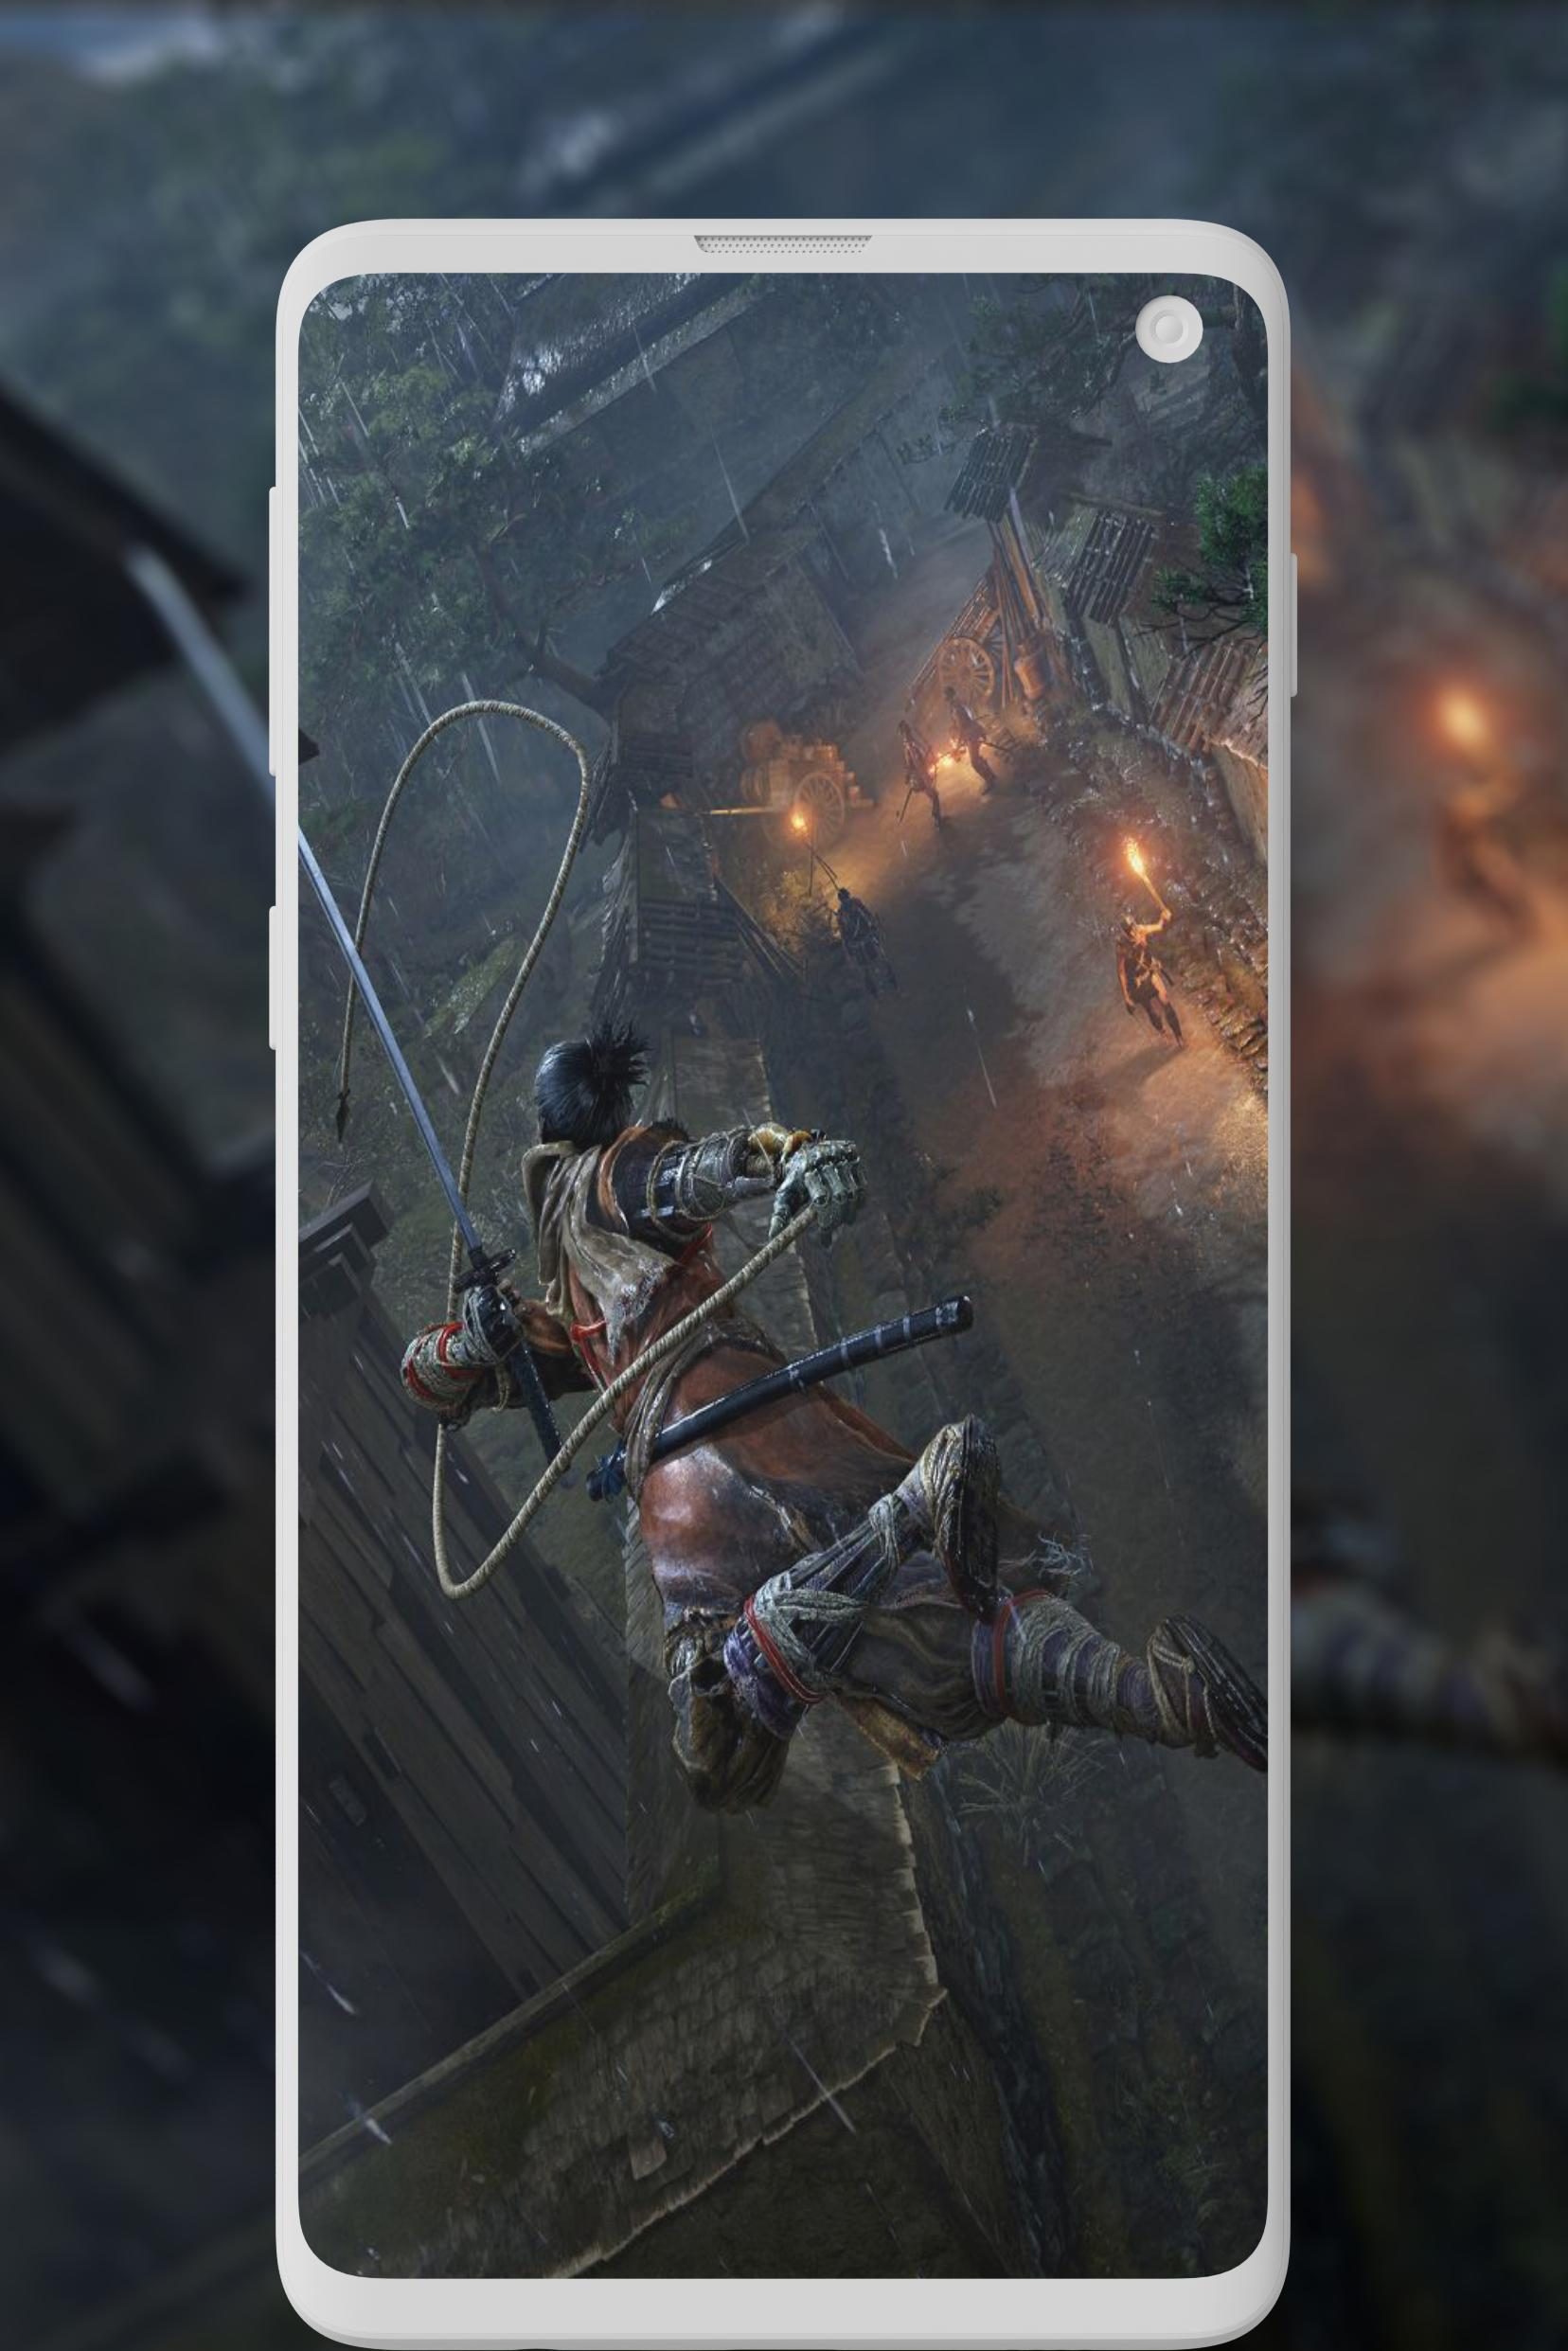 Sekiro Shadows Die Twice Wallpaper For Android Apk Download